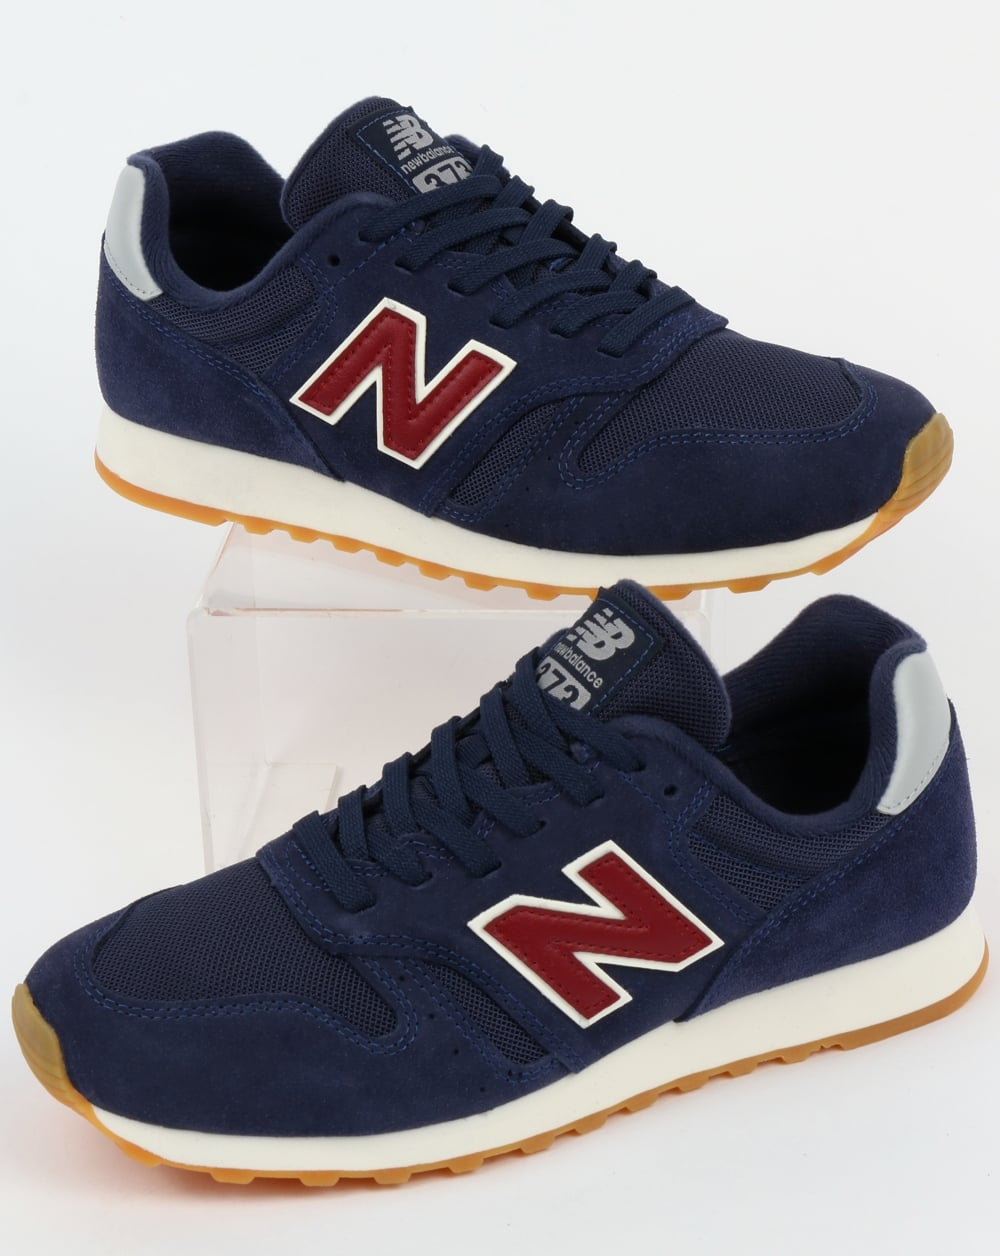 New Balance 373 Mens Trainers in Navy Red